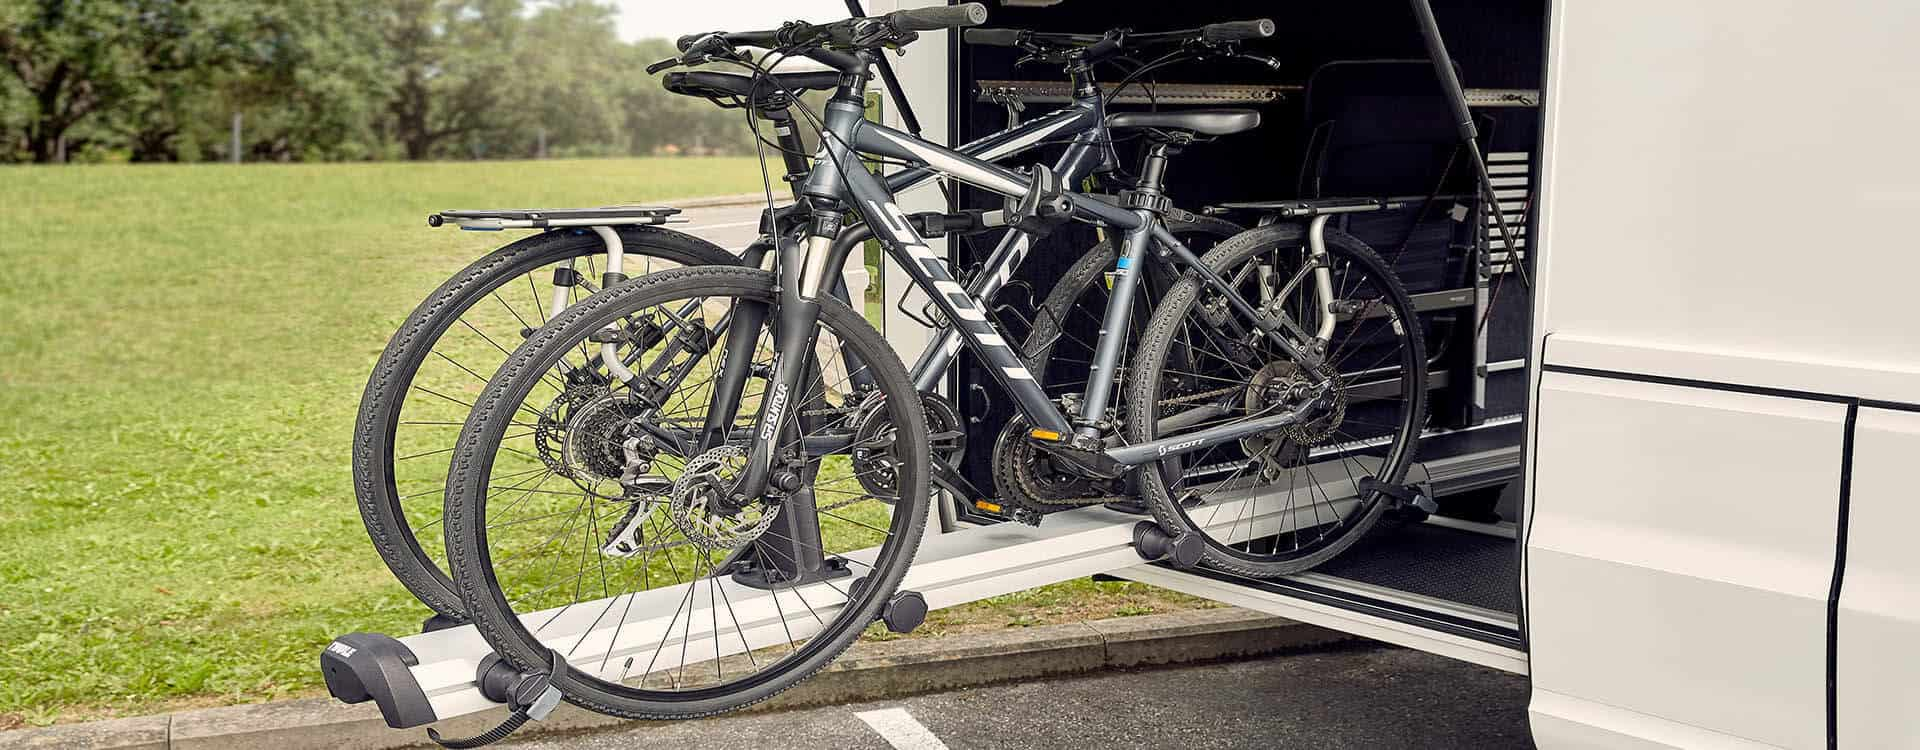 thule velospace garage bike rack